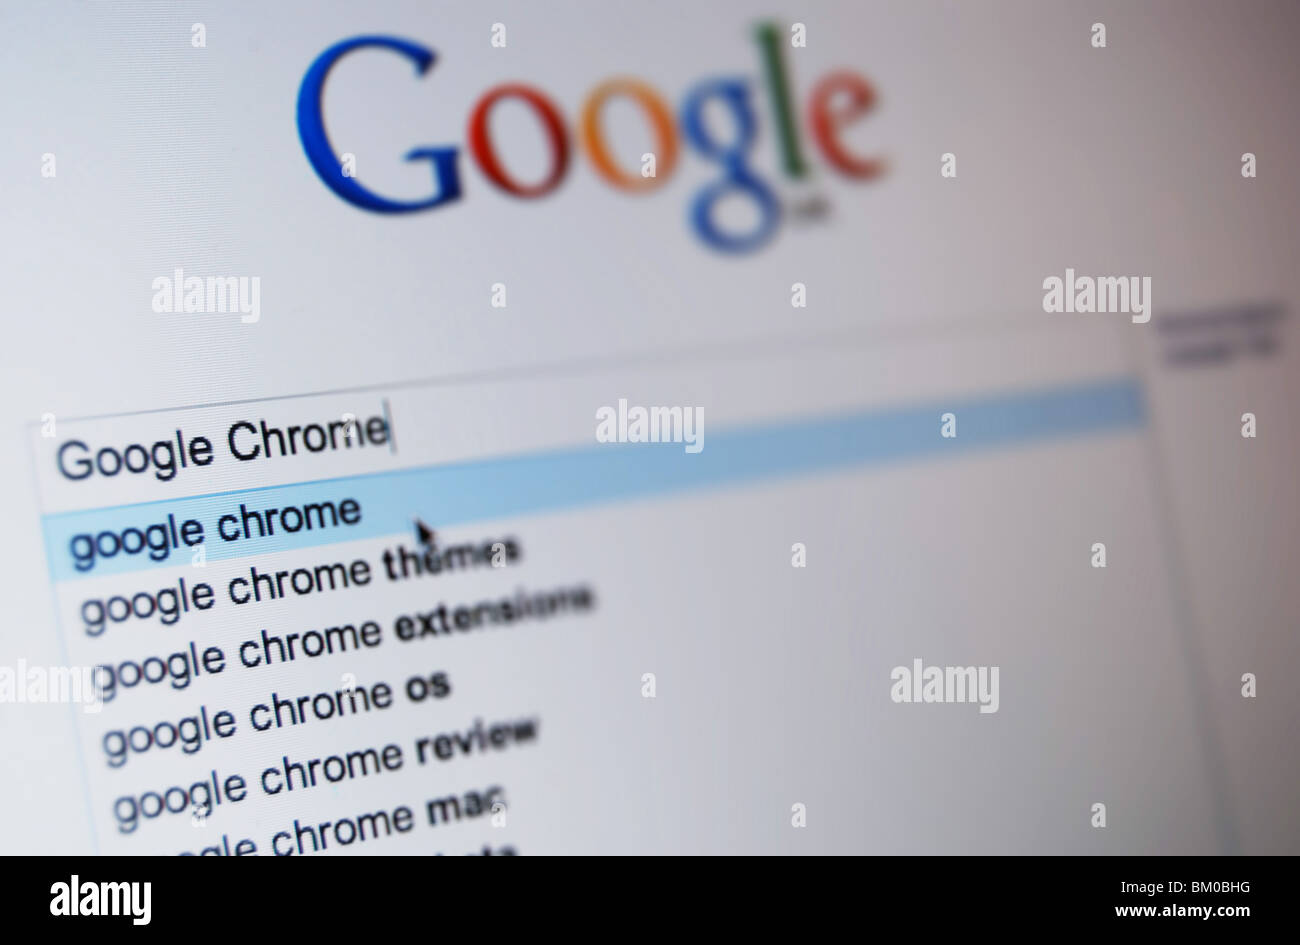 Google themes for mac - A Photo Illustration Of The Google Search Engine Using The Google Chrome Web Browser To Search For Google Chrome